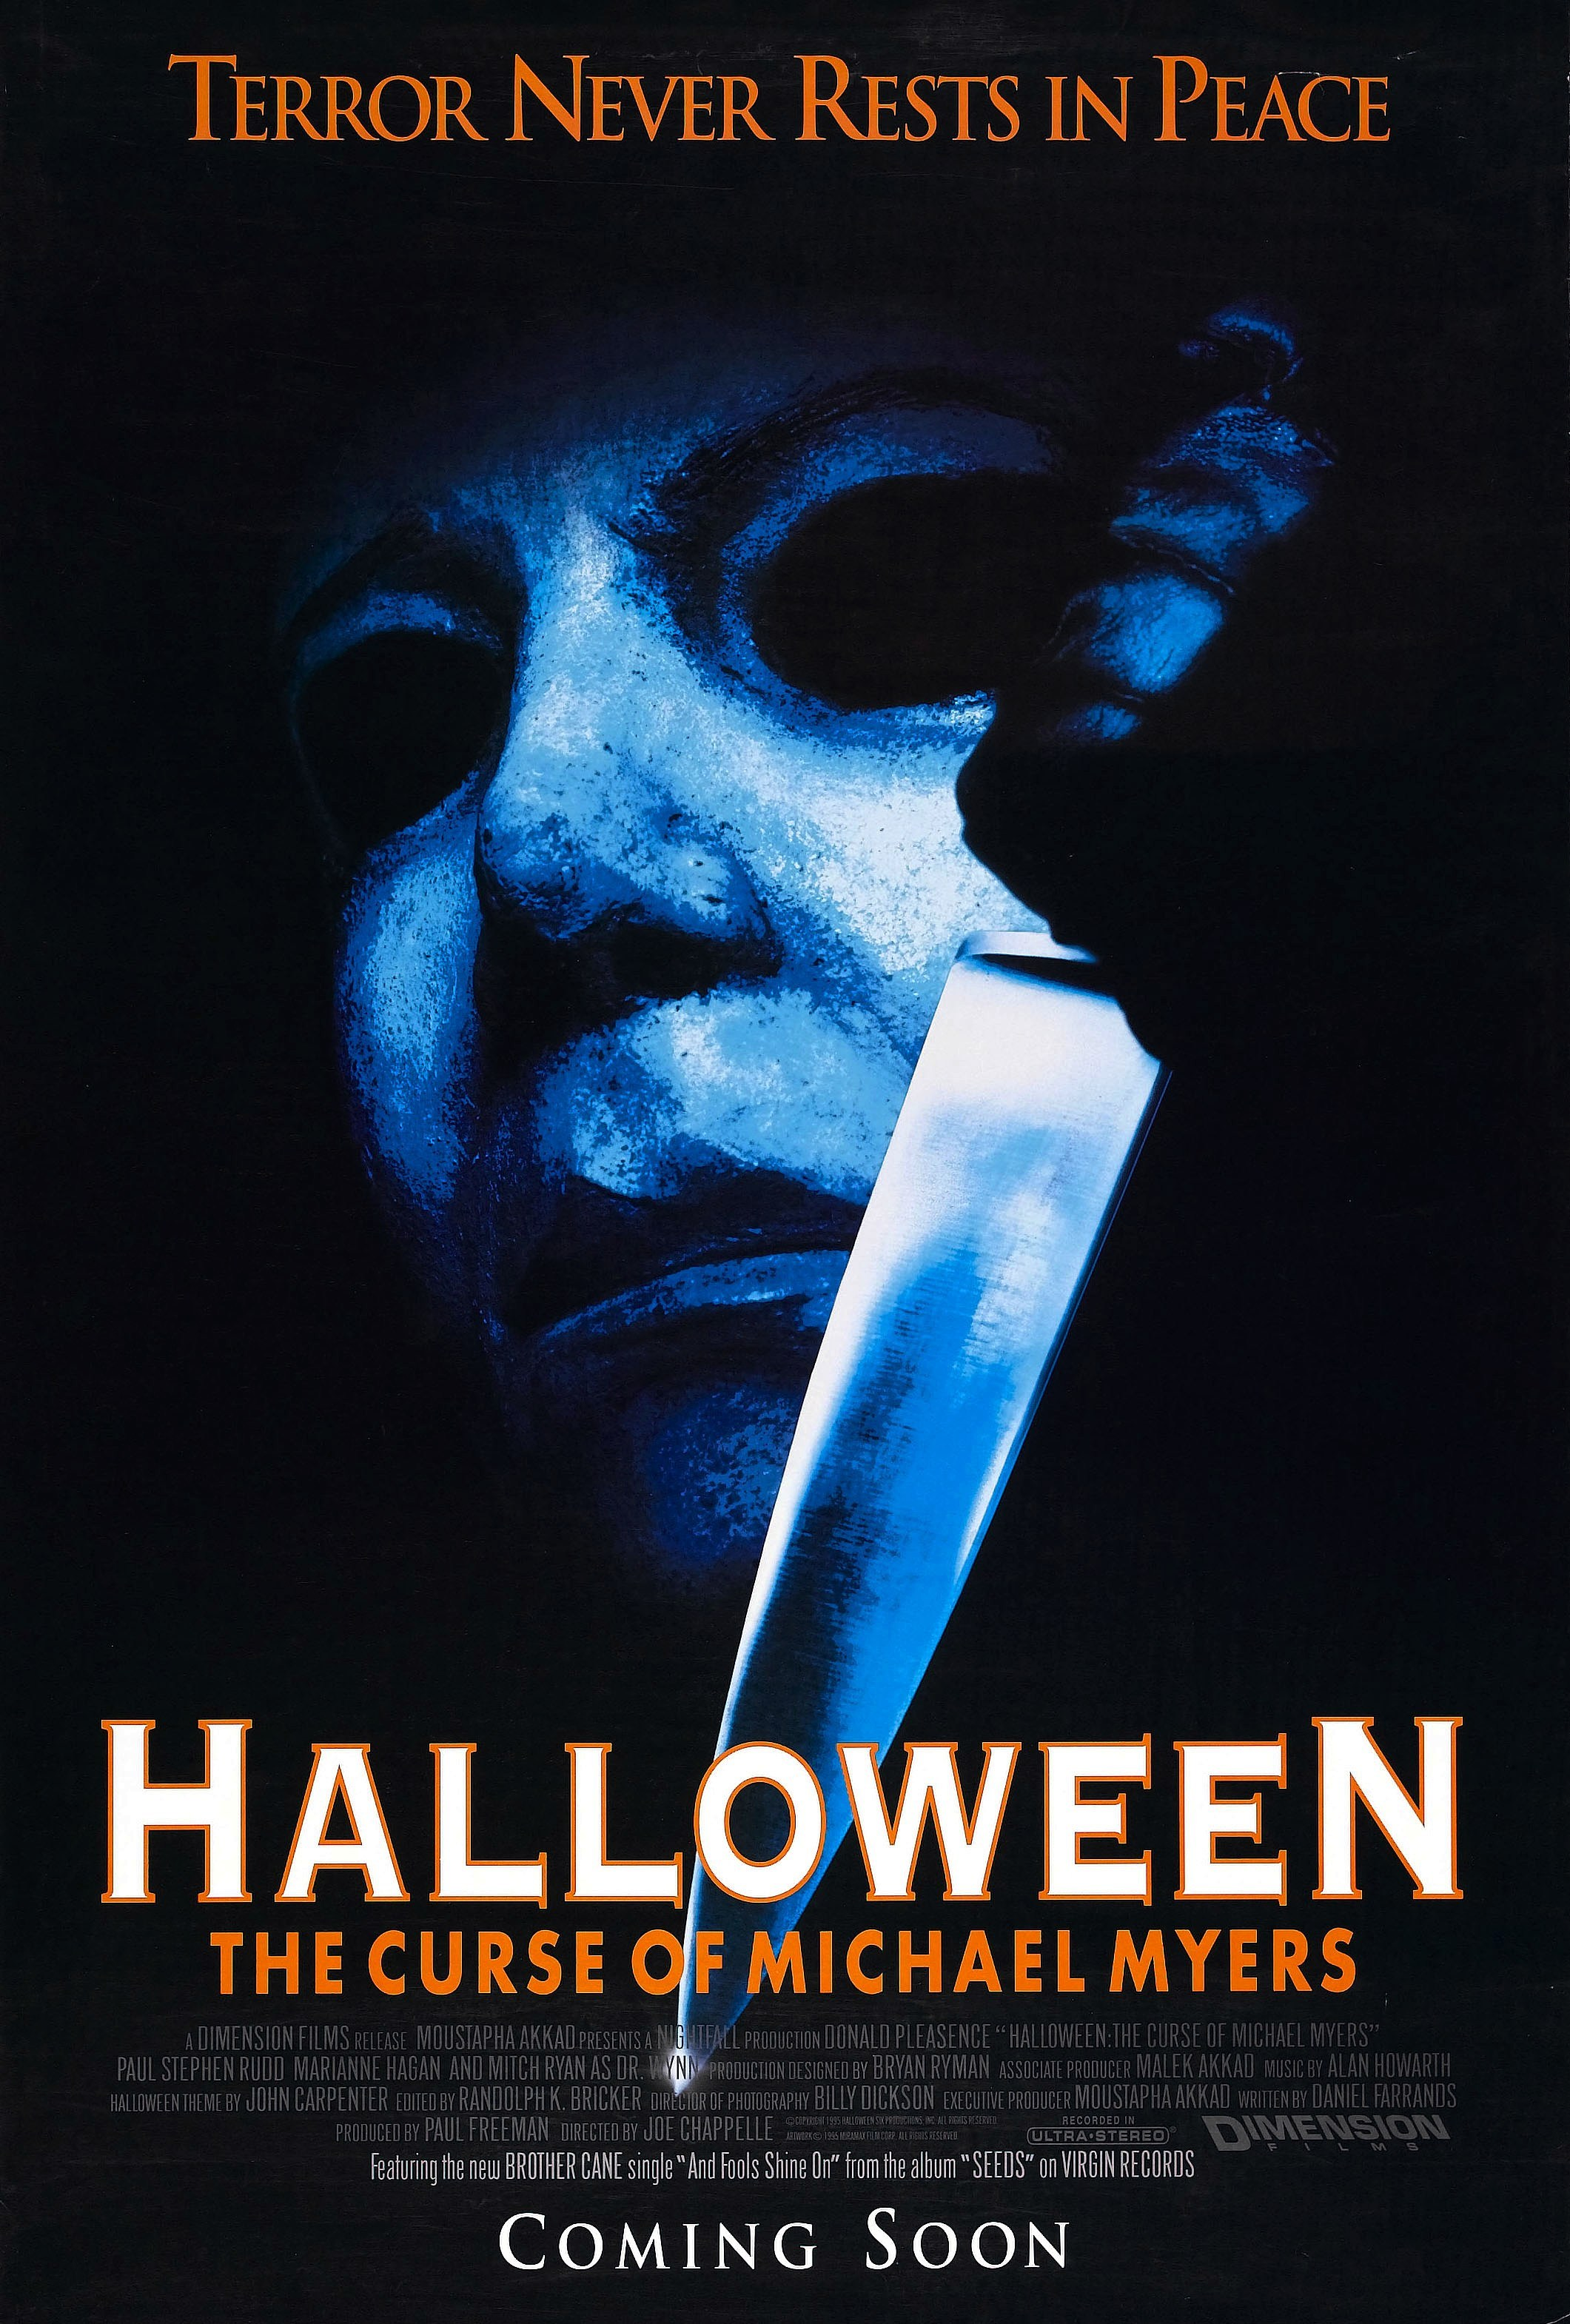 The Curse of Michael Myers poster